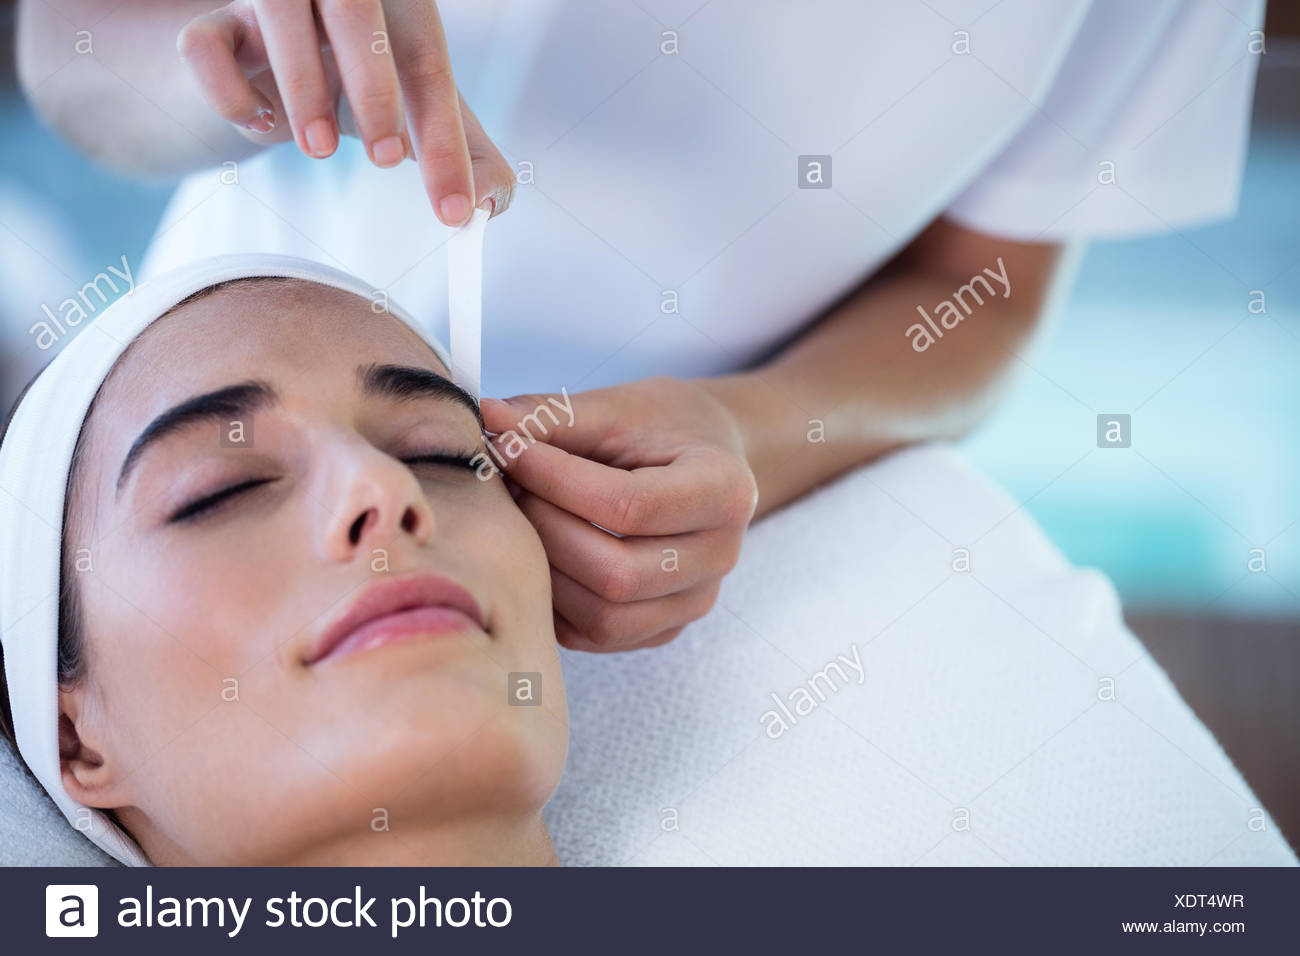 Woman getting her eyebrows shaped - Stock Image